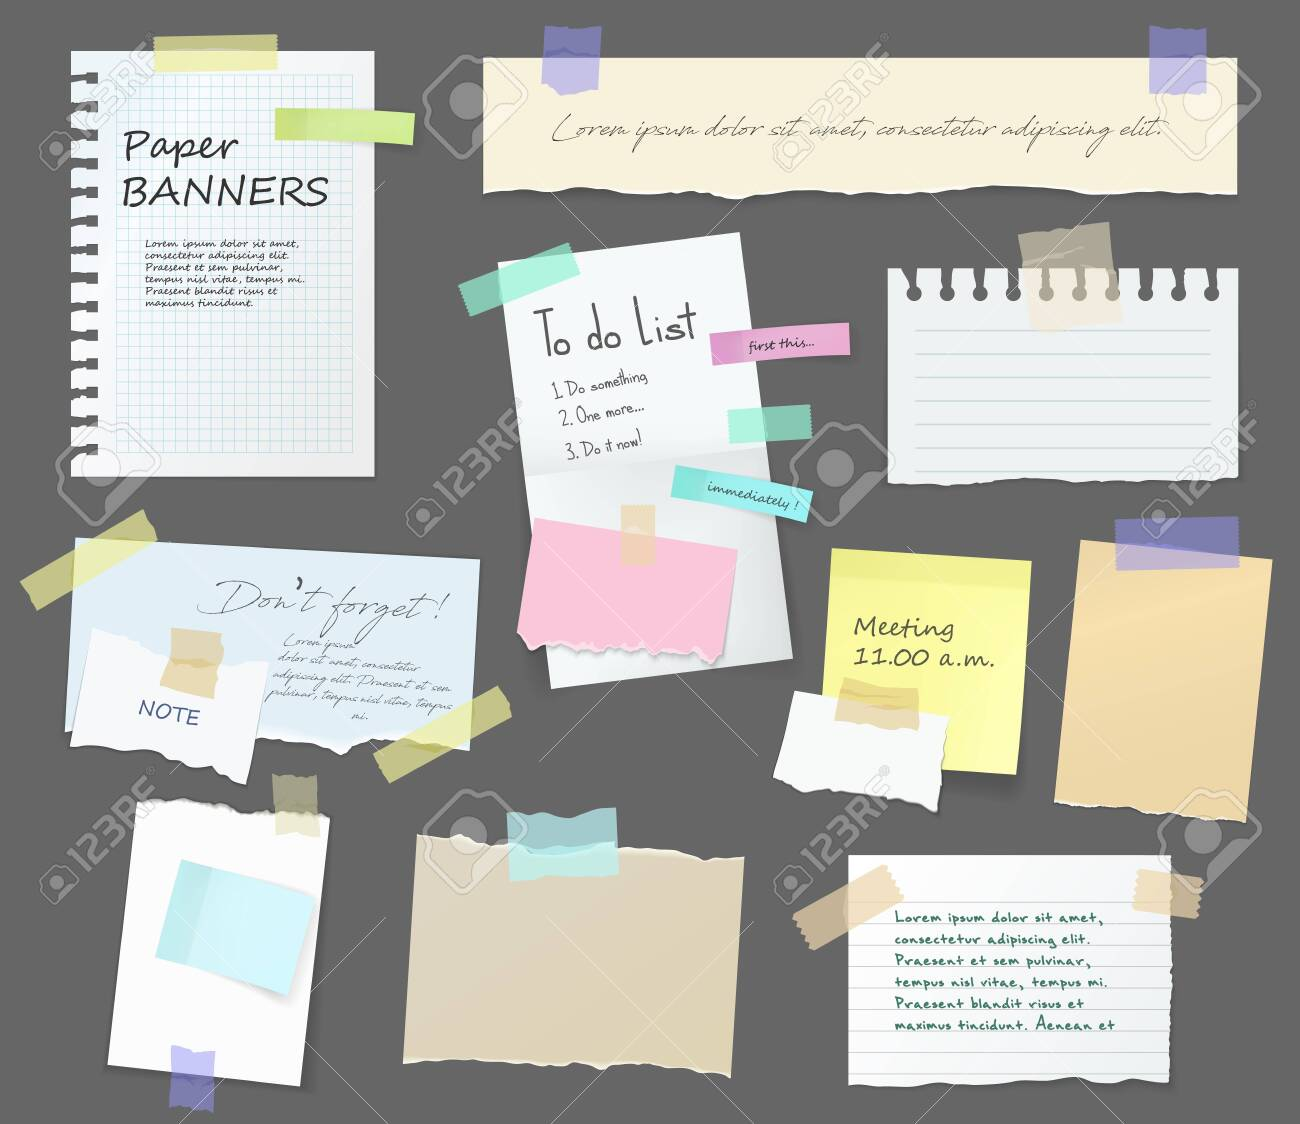 Paper notes on stickers, notepads and memo messages torn paper sheets. Vector blank sticky notepaper posts of meeting reminder, to do list and office notice or information board with appointment notes - 129344843